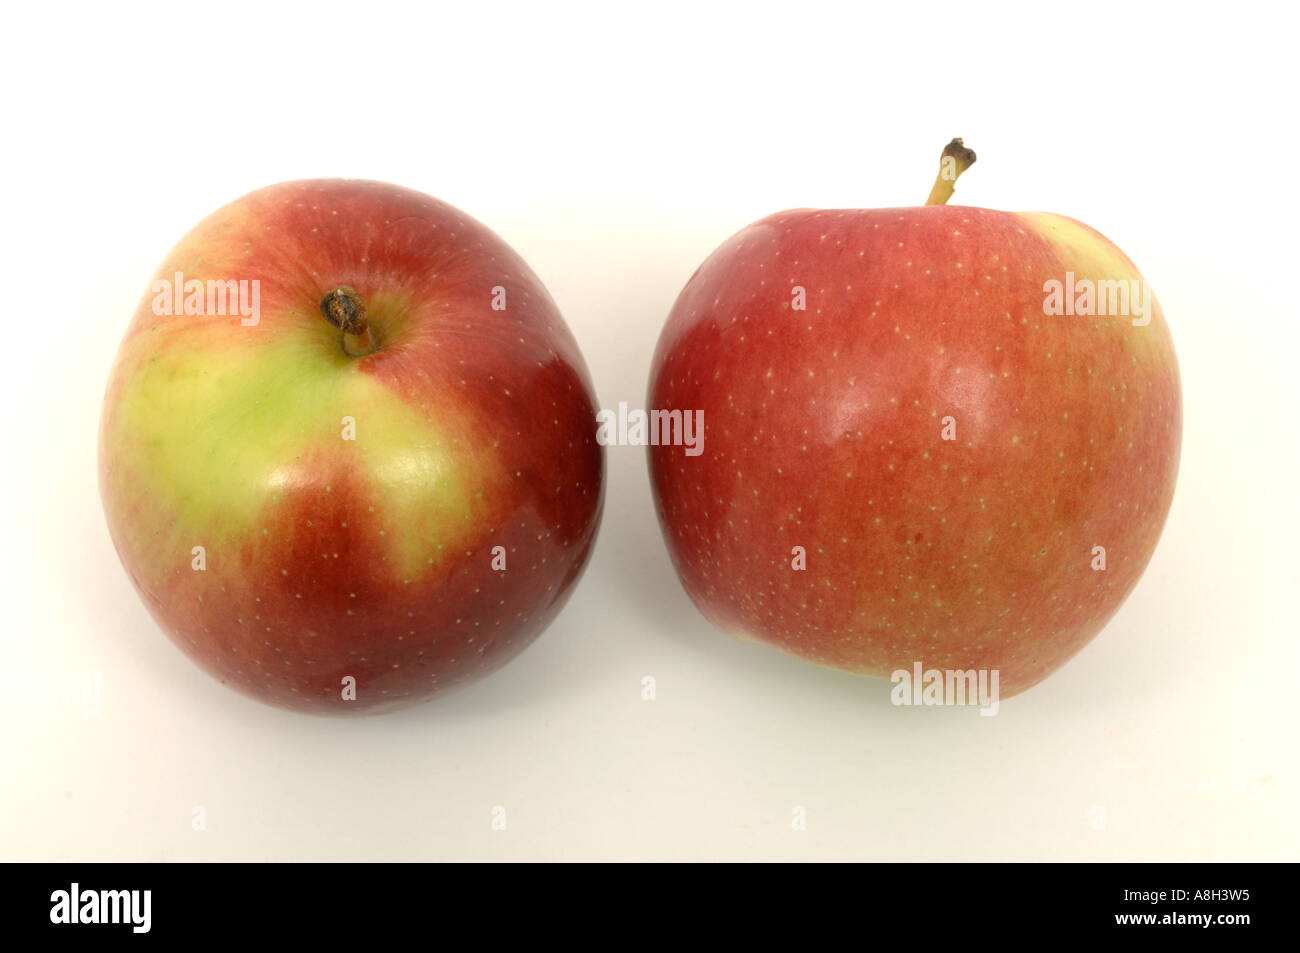 Empire apples supermarket bought and in normal shop condition - Stock Image